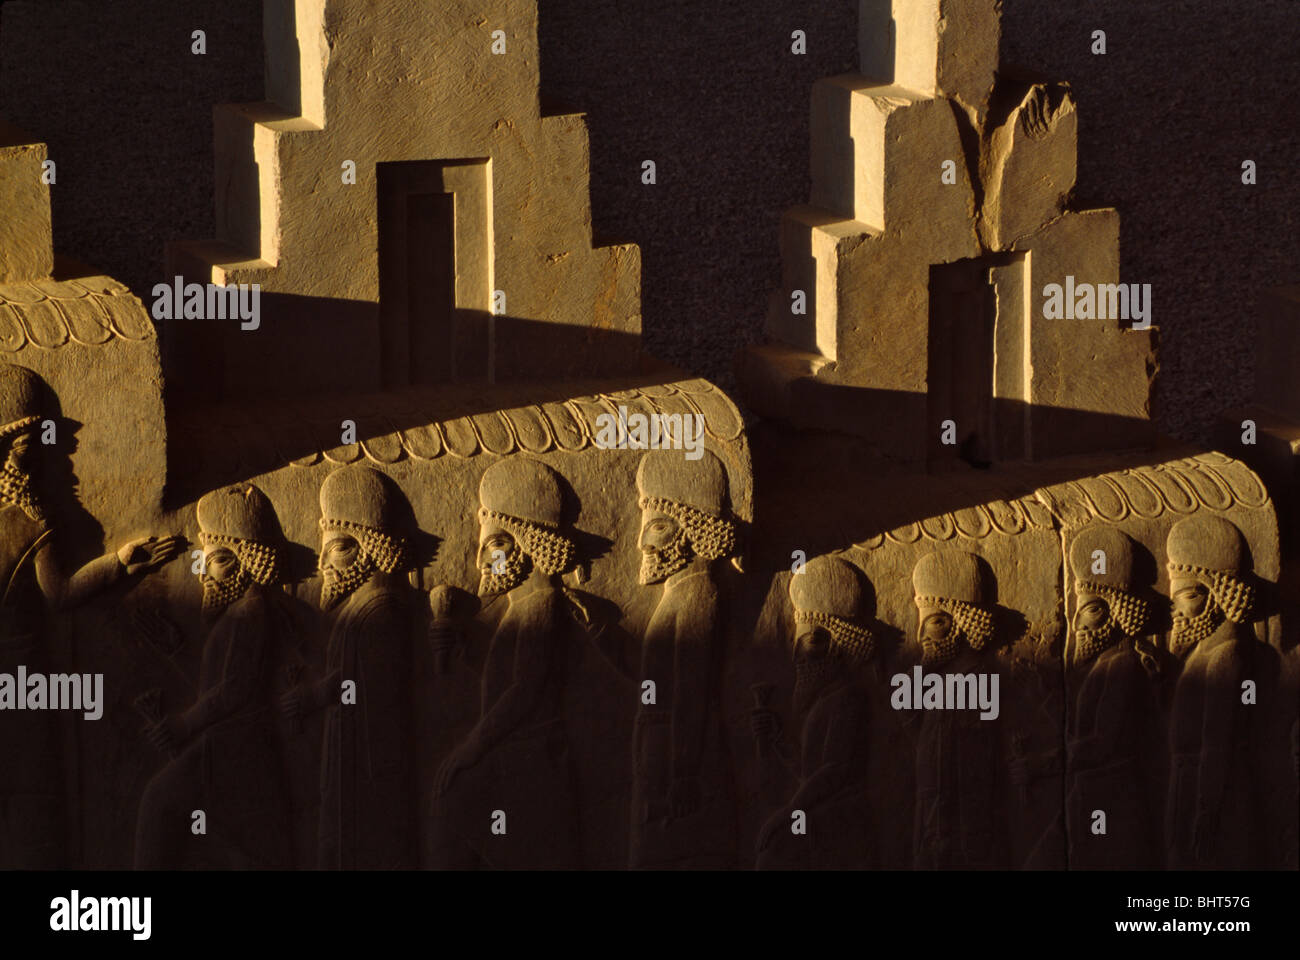 Relief sculpture of the subject people of the Achaemenian Empire climb the stairway Persepolis, Iran - Stock Image